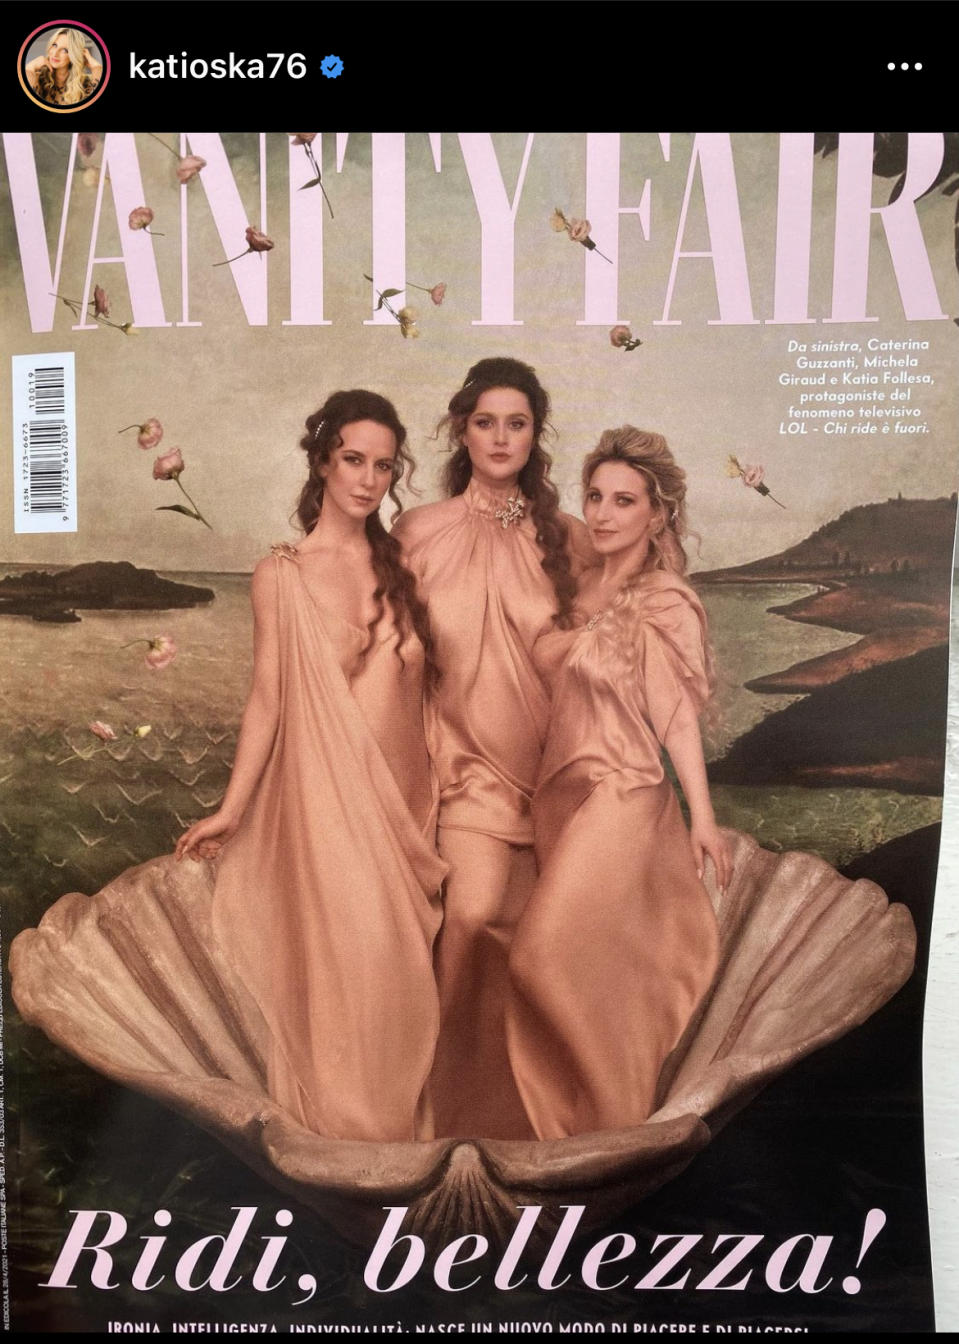 La copertina di Vanity Fair (Instagram Katia Follesa)